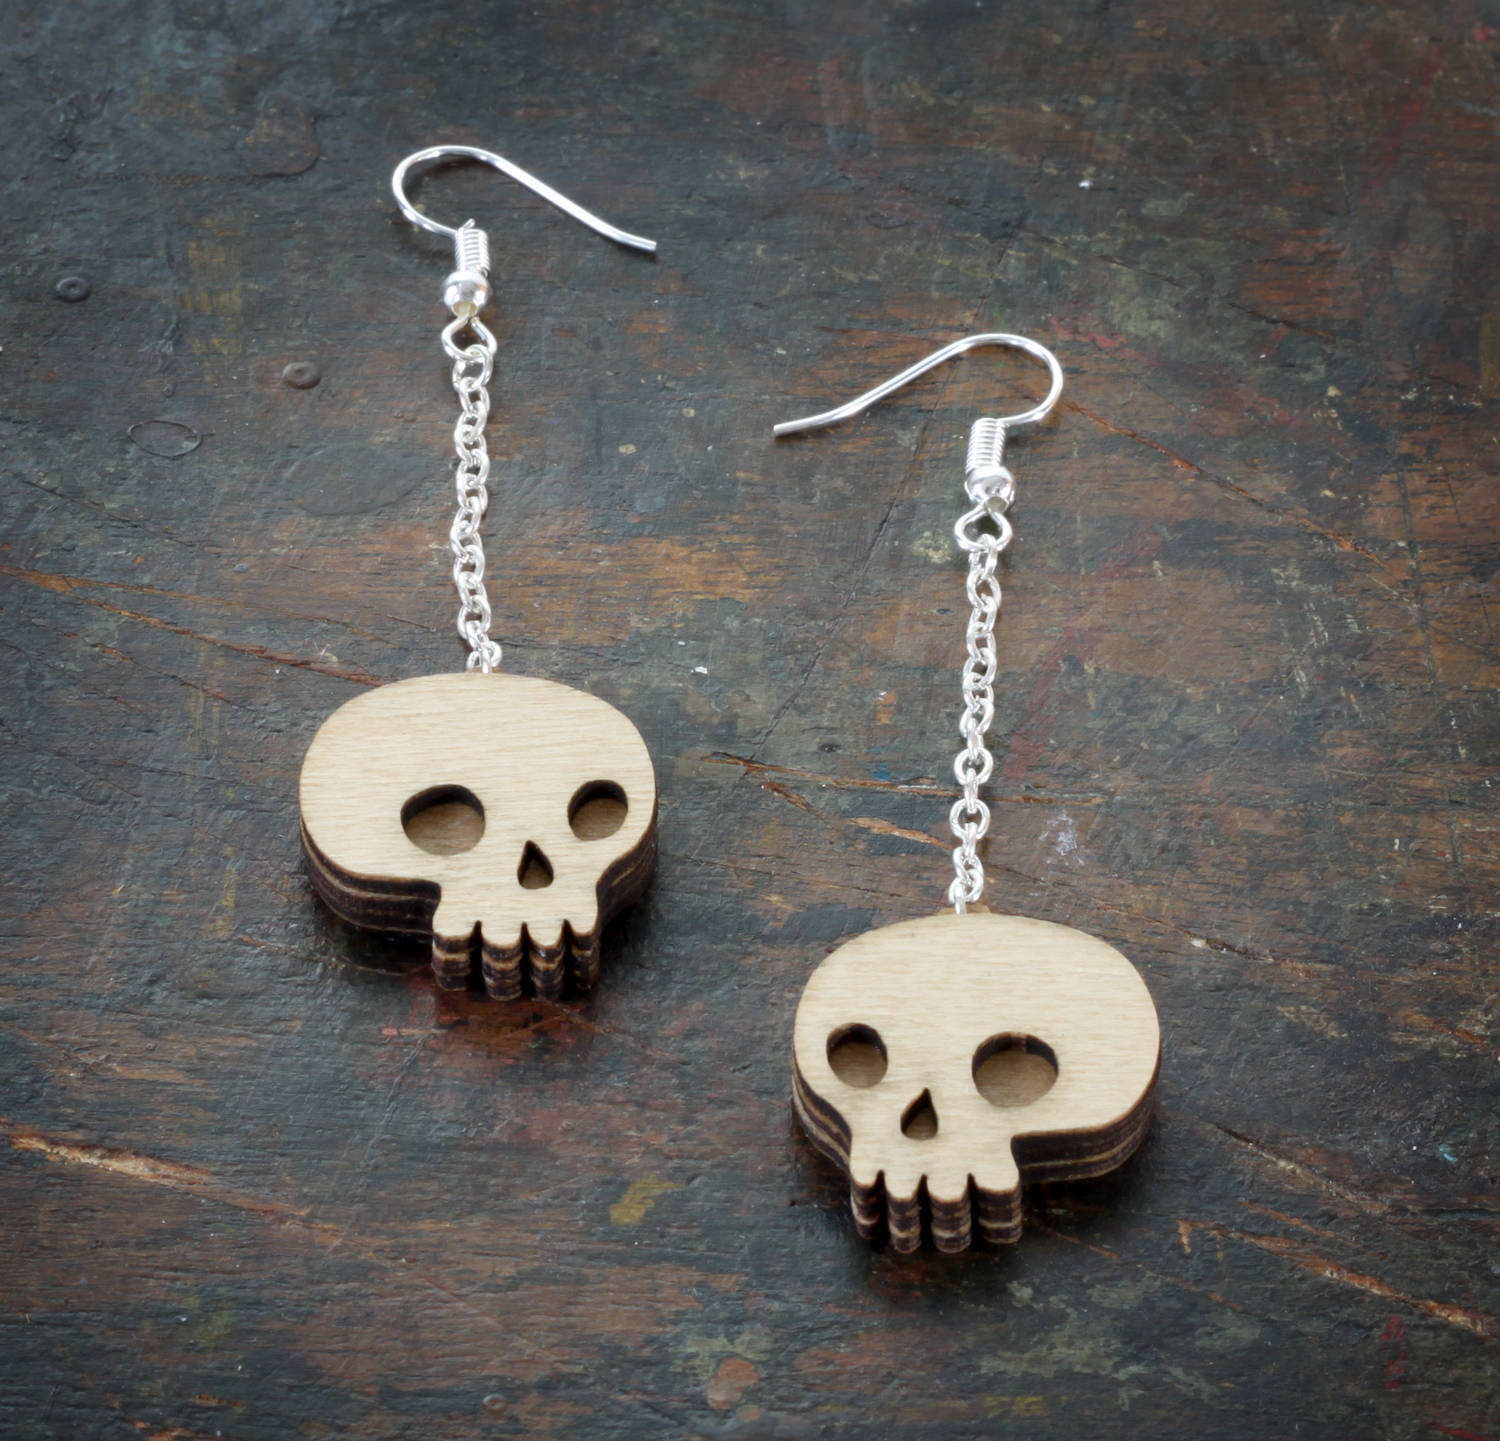 Skull Earrings Desk.jpg